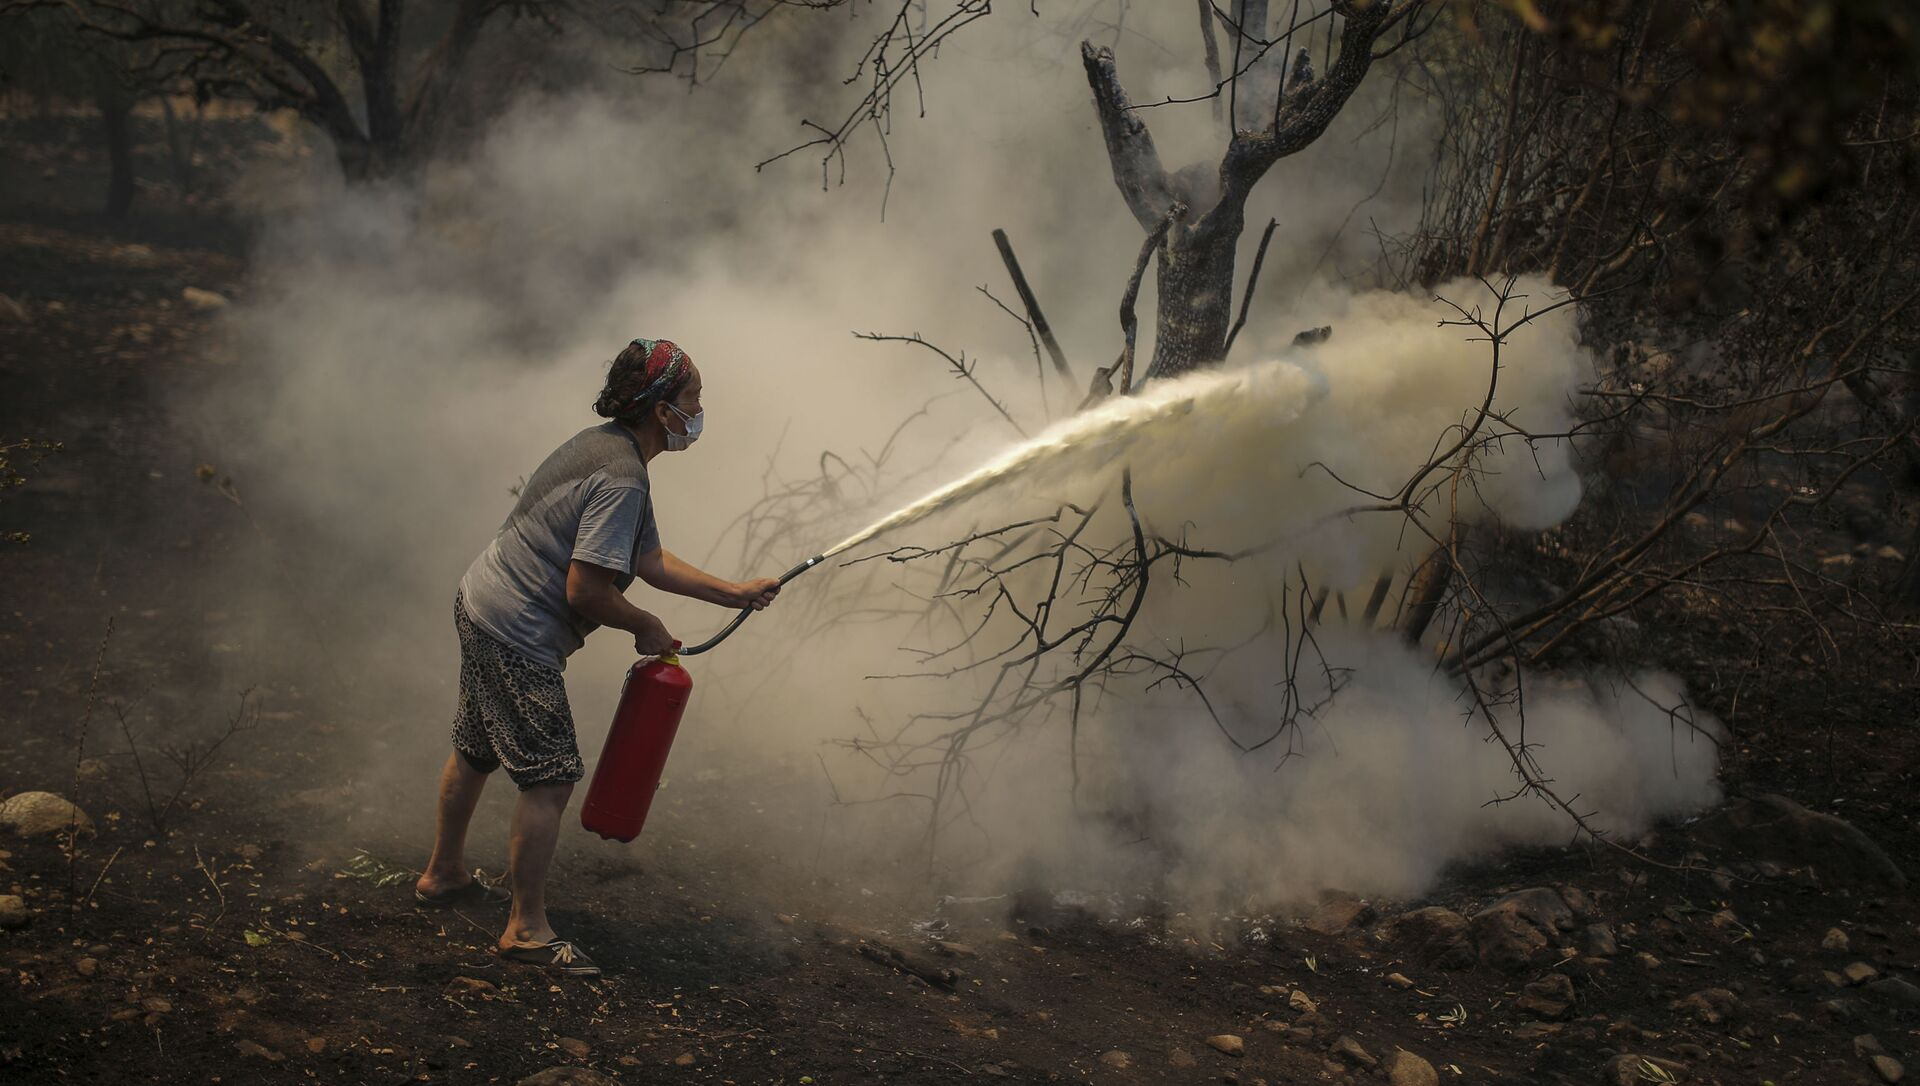 A woman uses a fire extinguisher to save a burning tree in Cokertme village, near Bodrum, Mugla, Turkey, Tuesday, Aug. 3, 2021. - Sputnik International, 1920, 03.08.2021